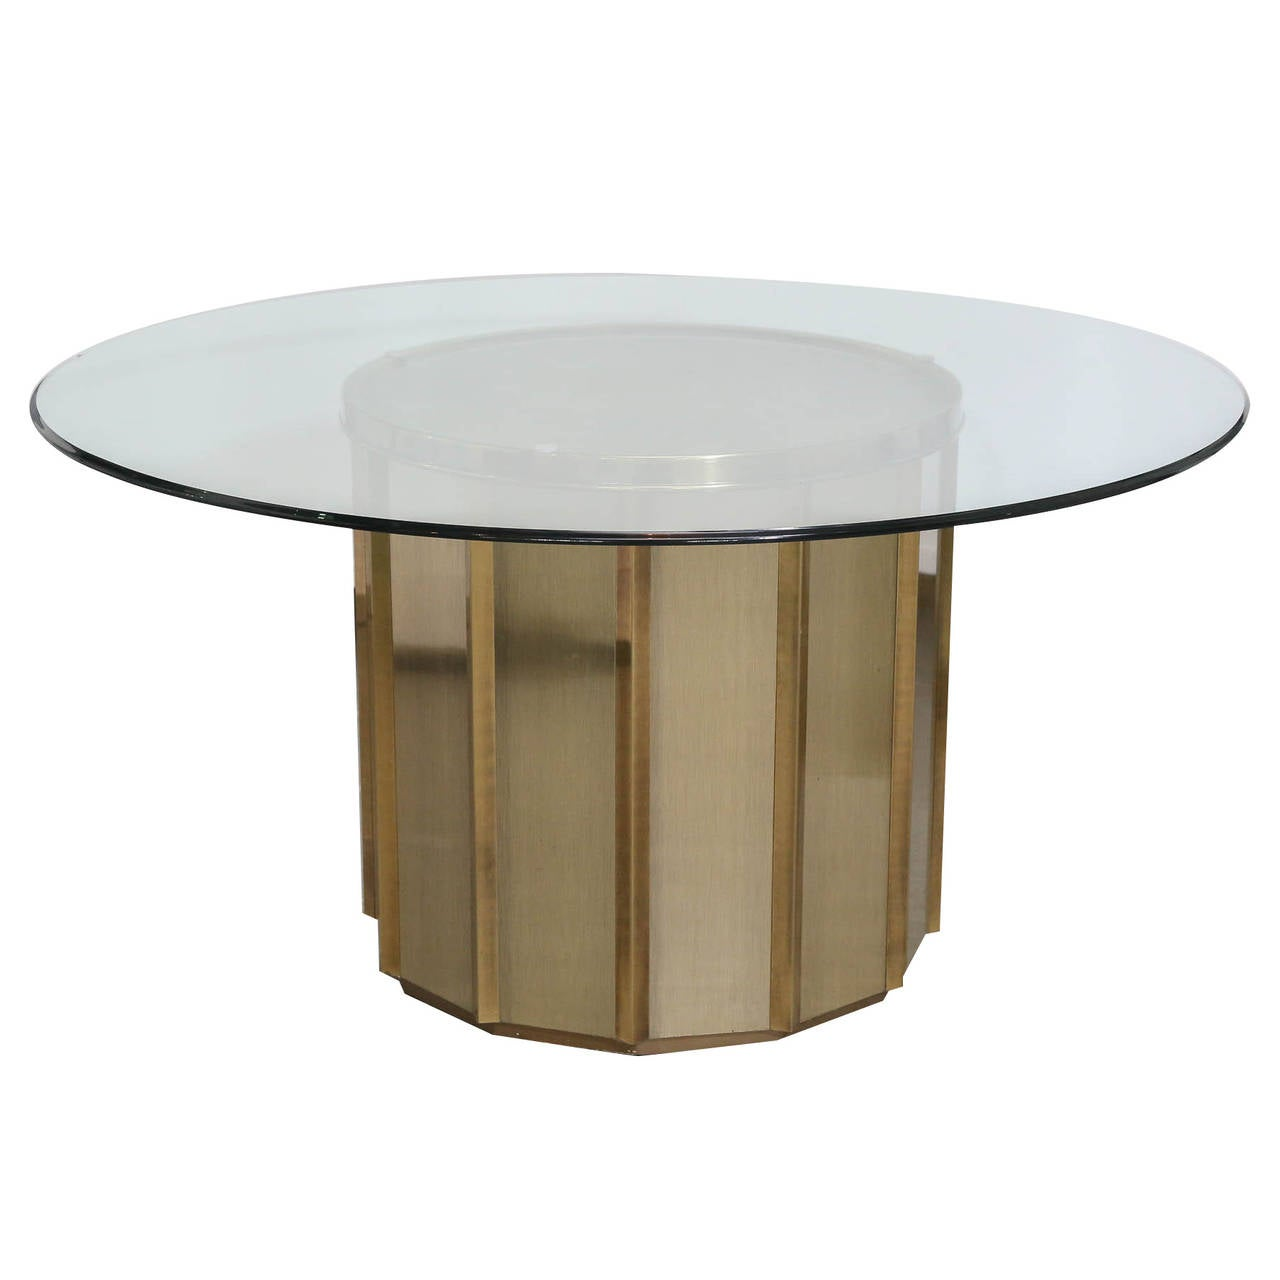 Round Brass Barrel Mastercraft Table Base At 1stdibs